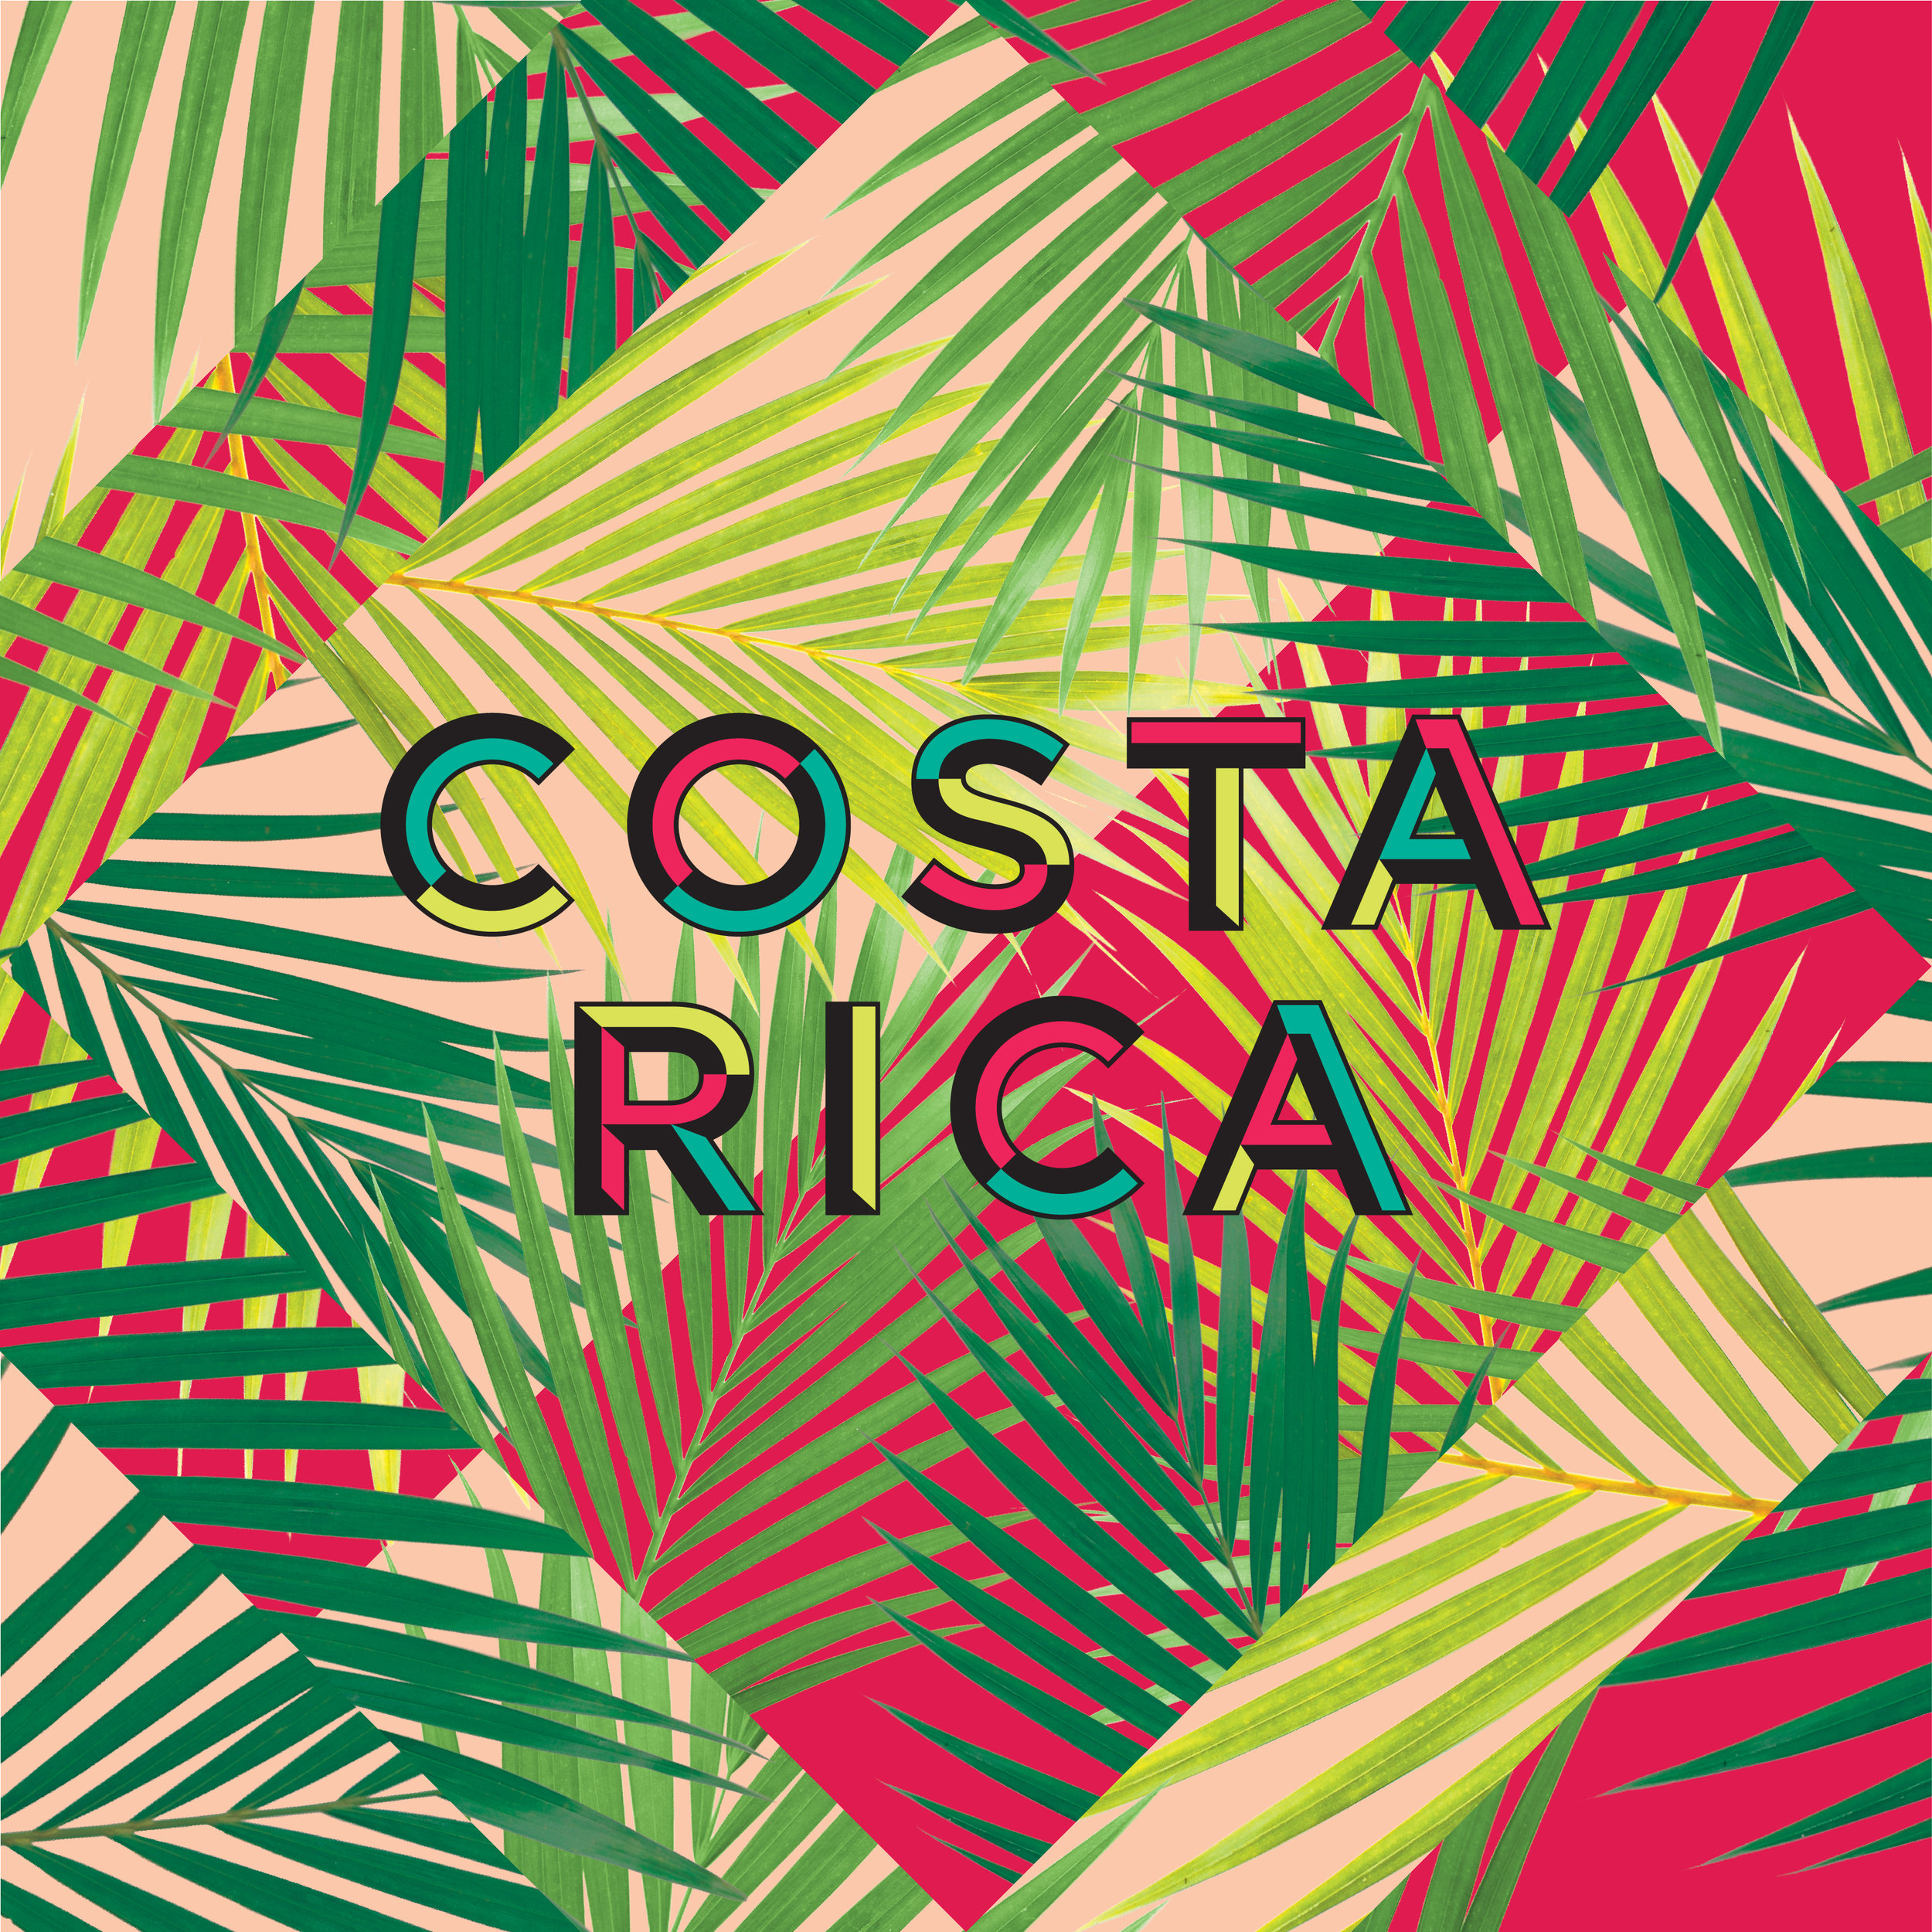 Costa Rica Logotype